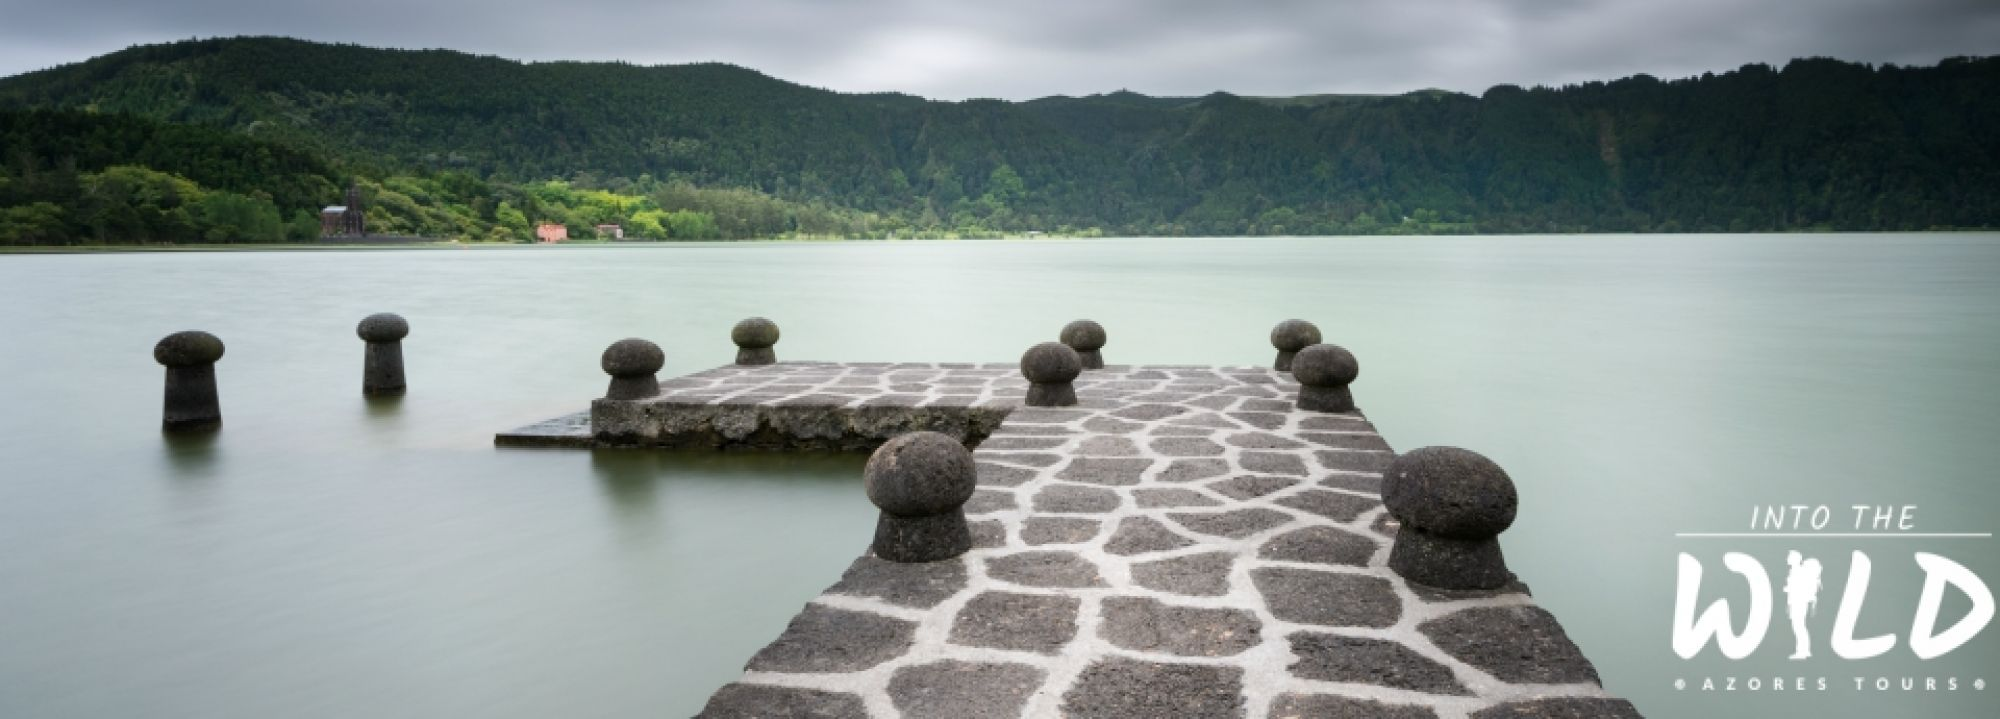 Guided Tour Furnas / Hot Springs (optional), Full Day